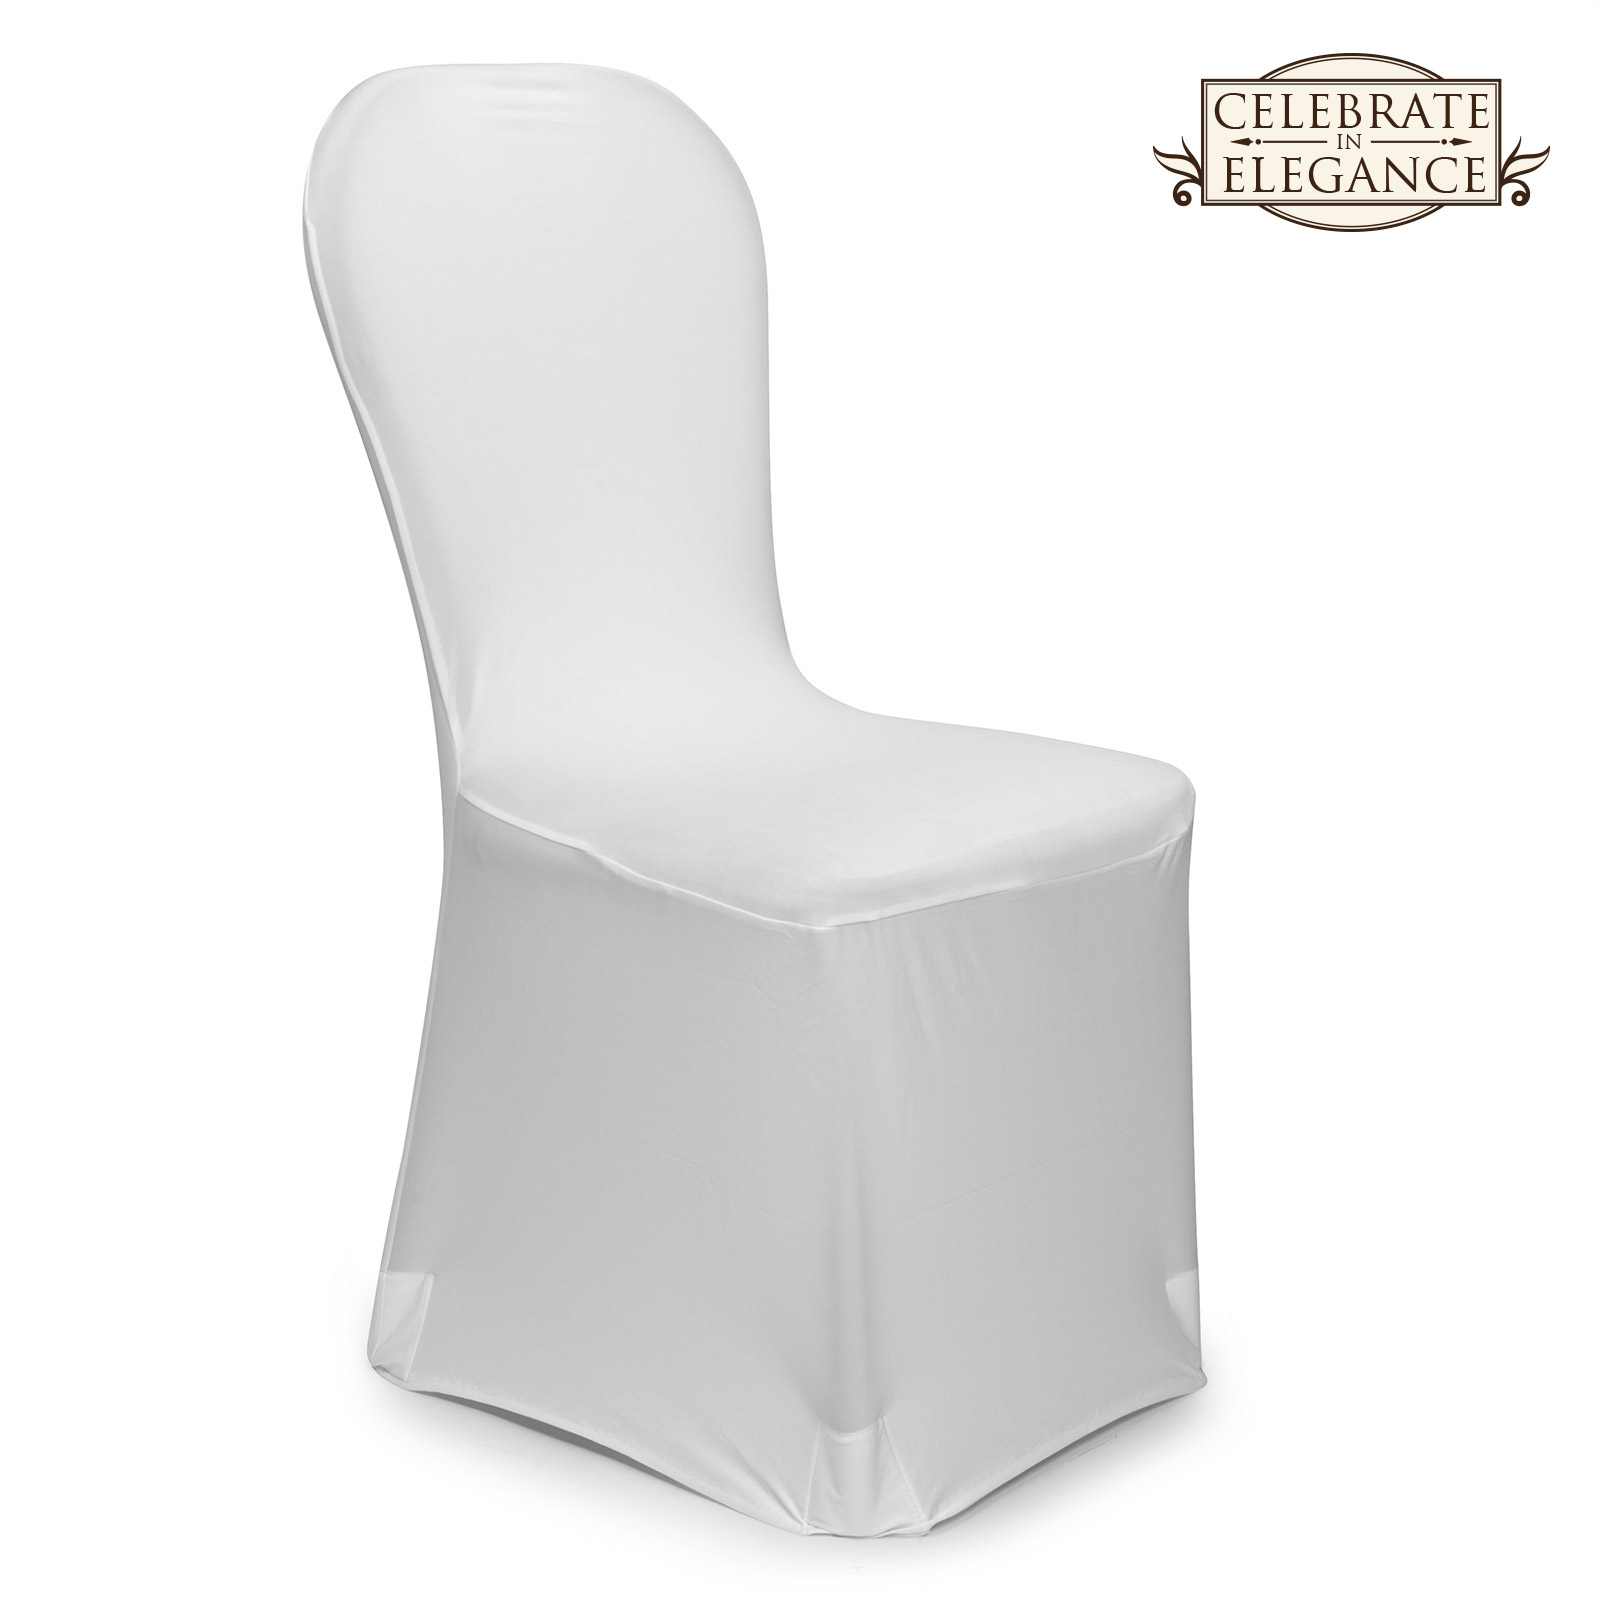 spandex folding chair covers amazon sleeper chairs canada 10 banquet wedding party décor ebay